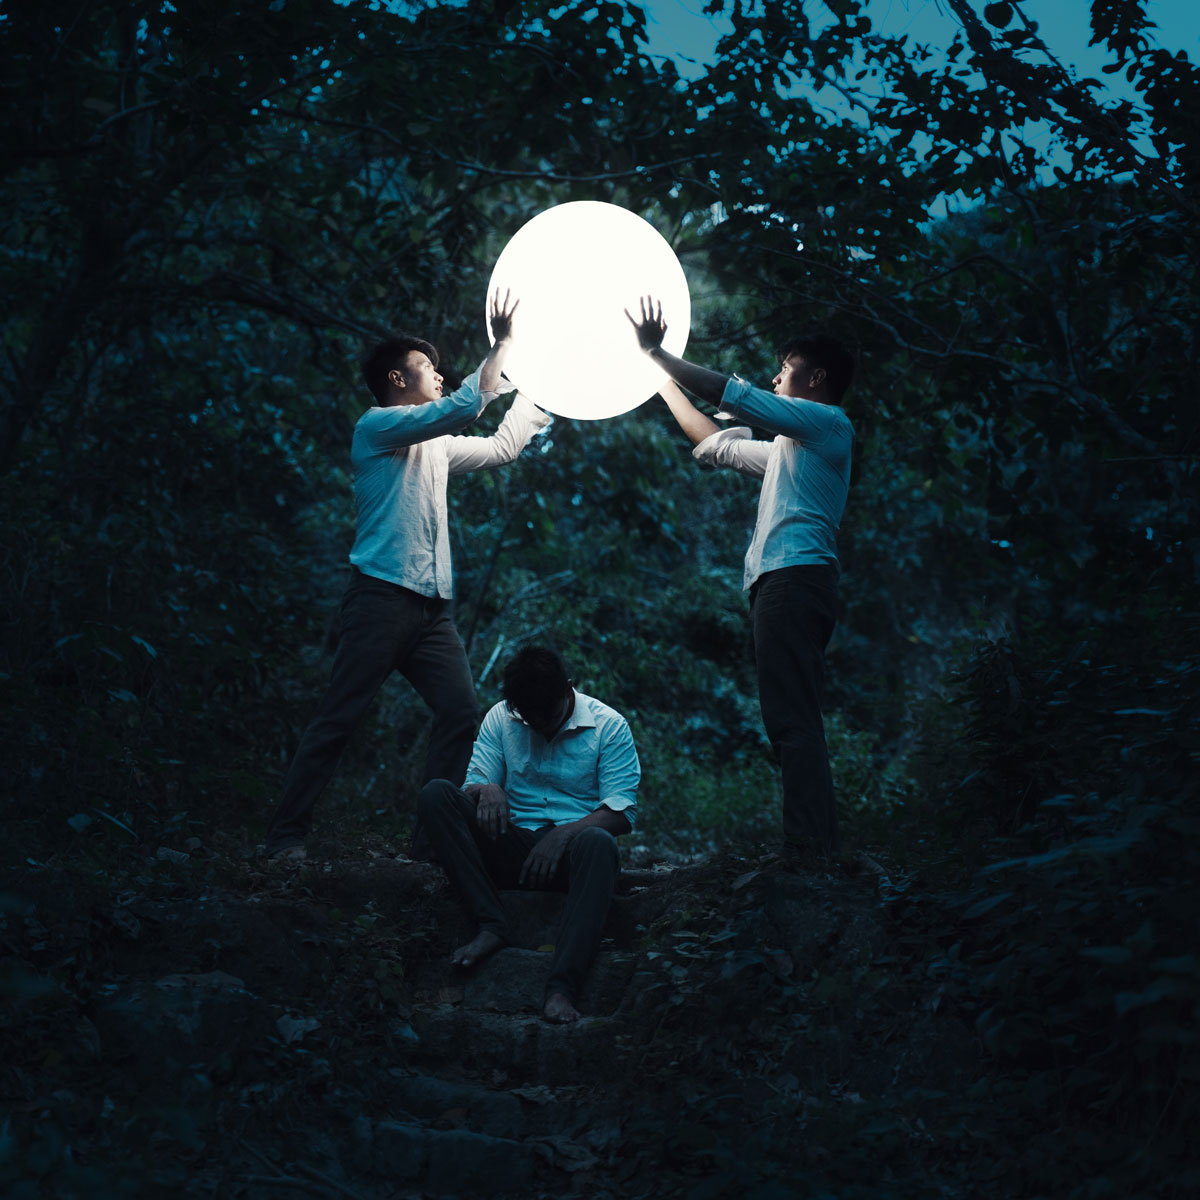 Mike Alegado concept photography image of men holding large white ball above third depressed man